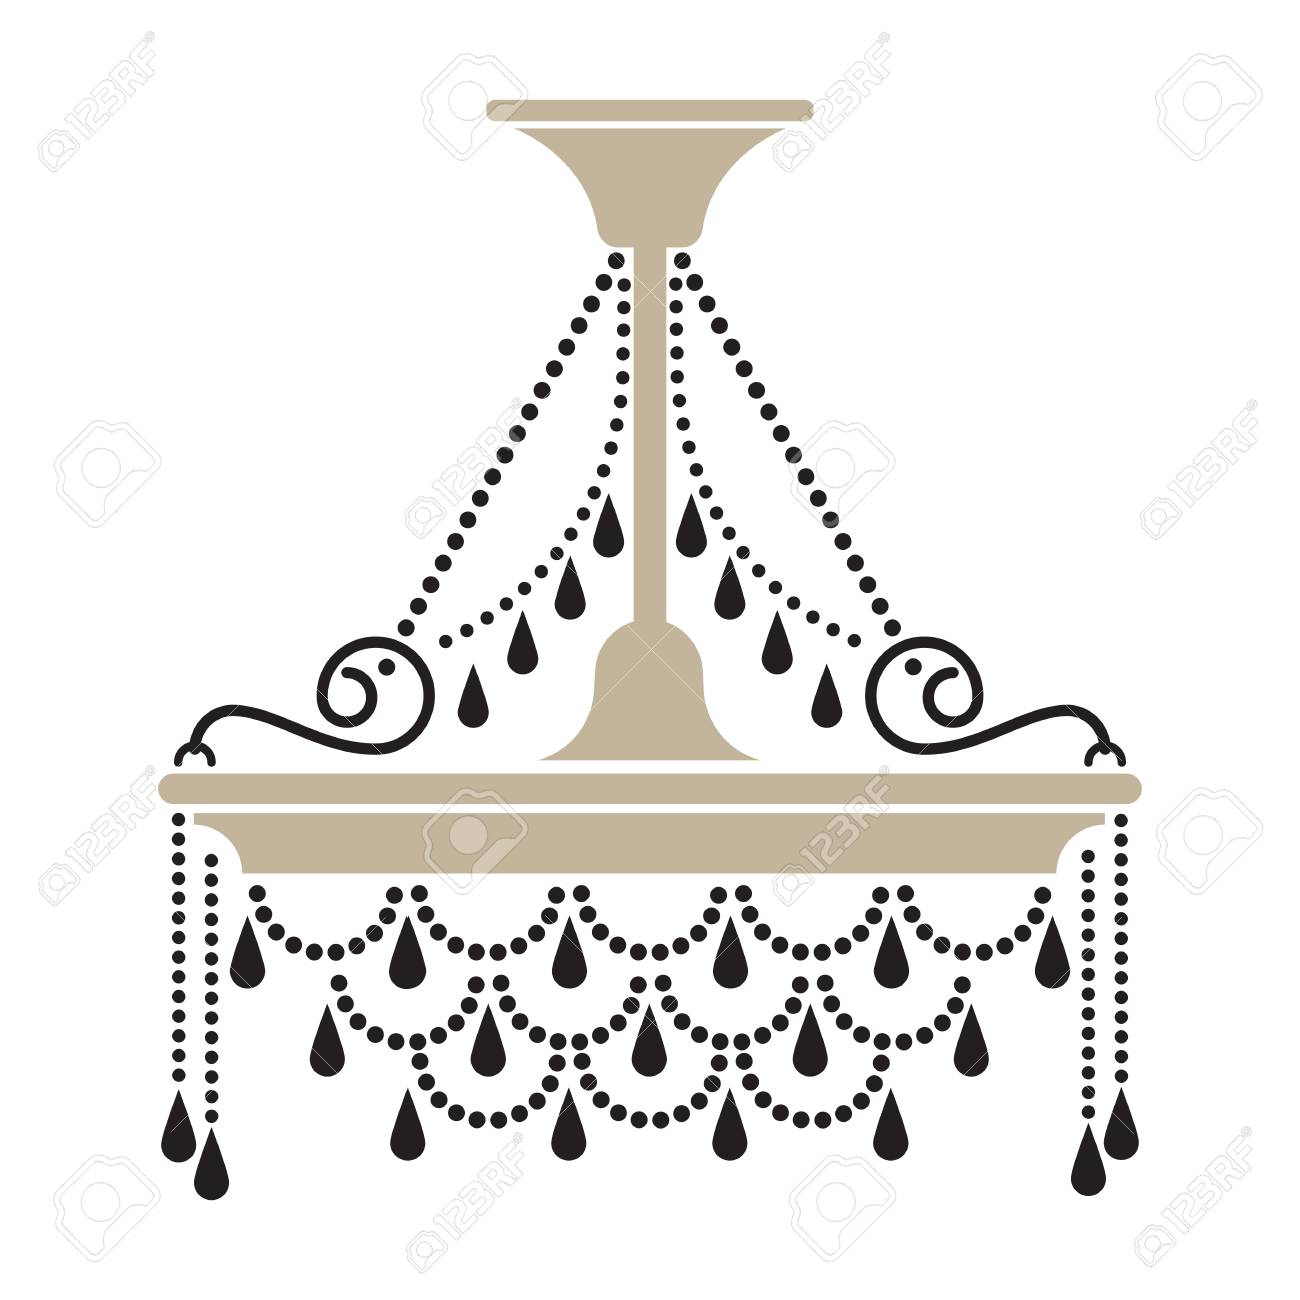 Crystal Chandelier Silhouette Vector Illustration Stock